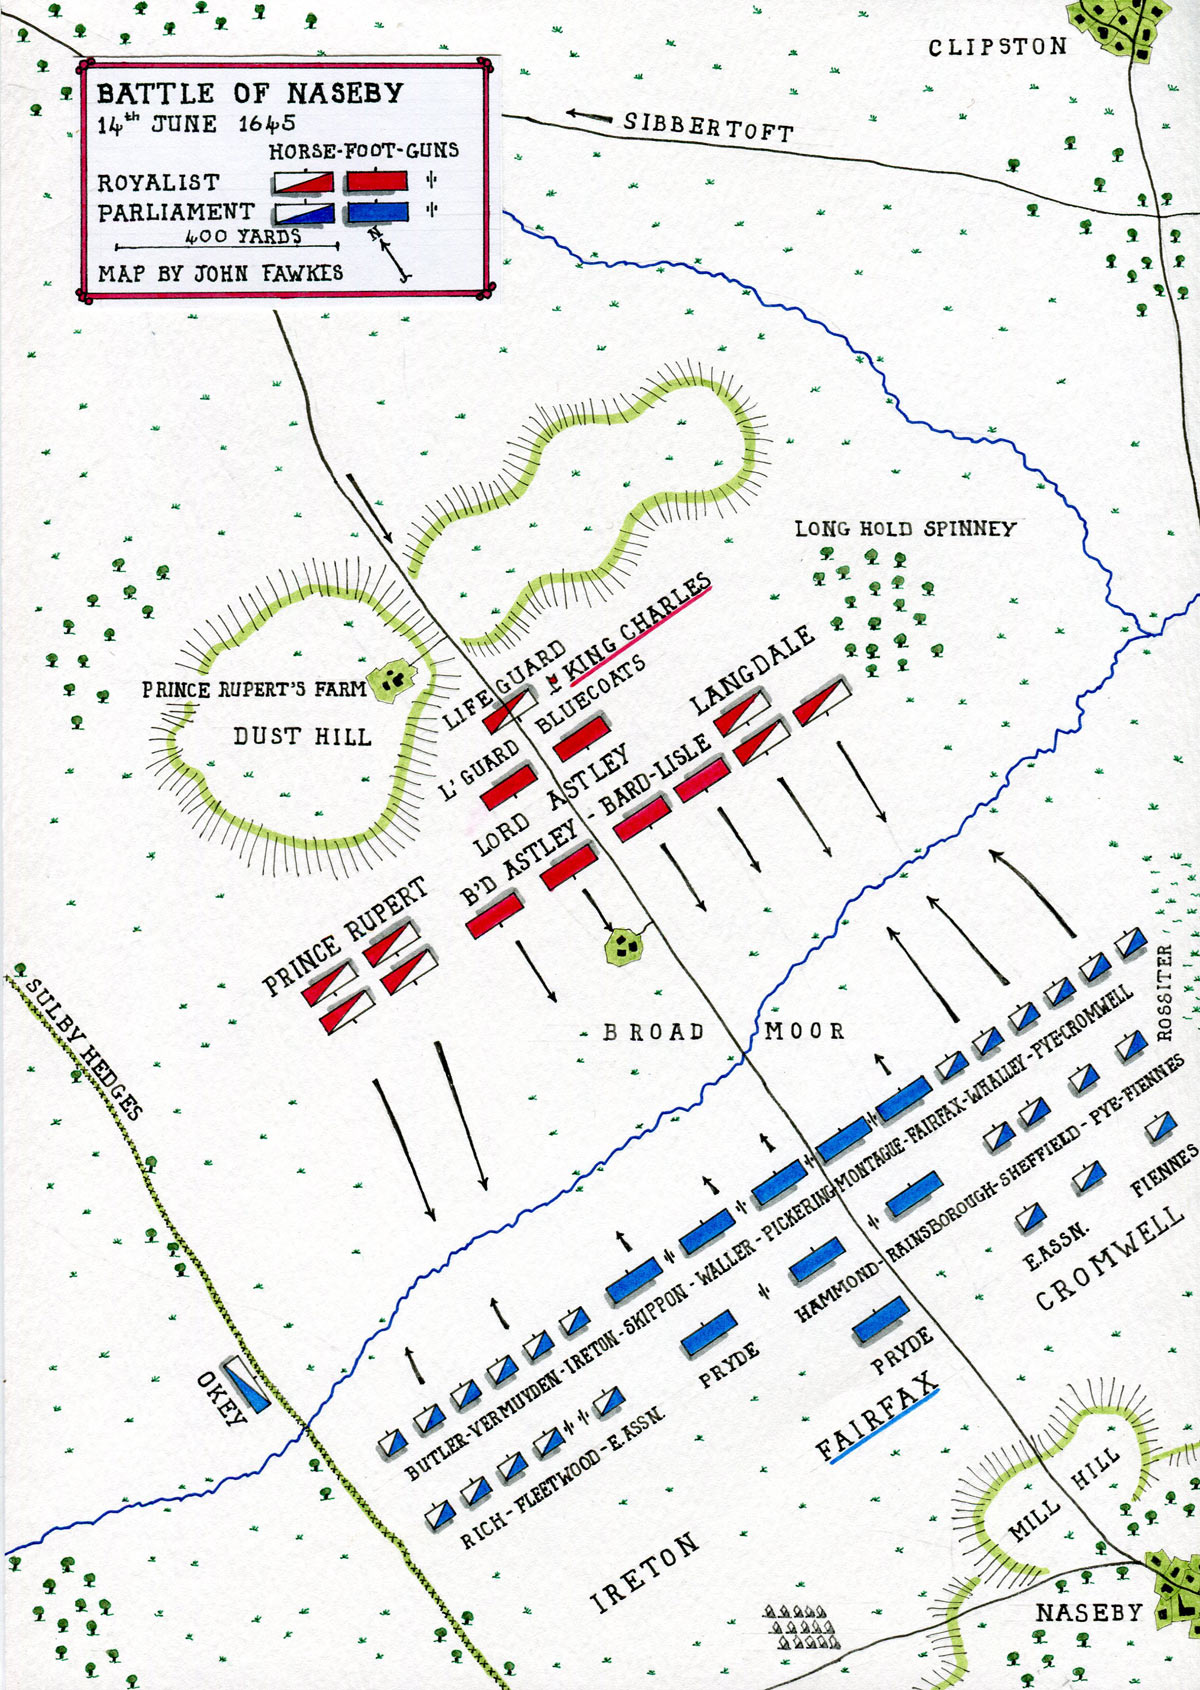 Map of the Battle of Naseby 14th June 1645 during the English Civil War: map by John Fawkes